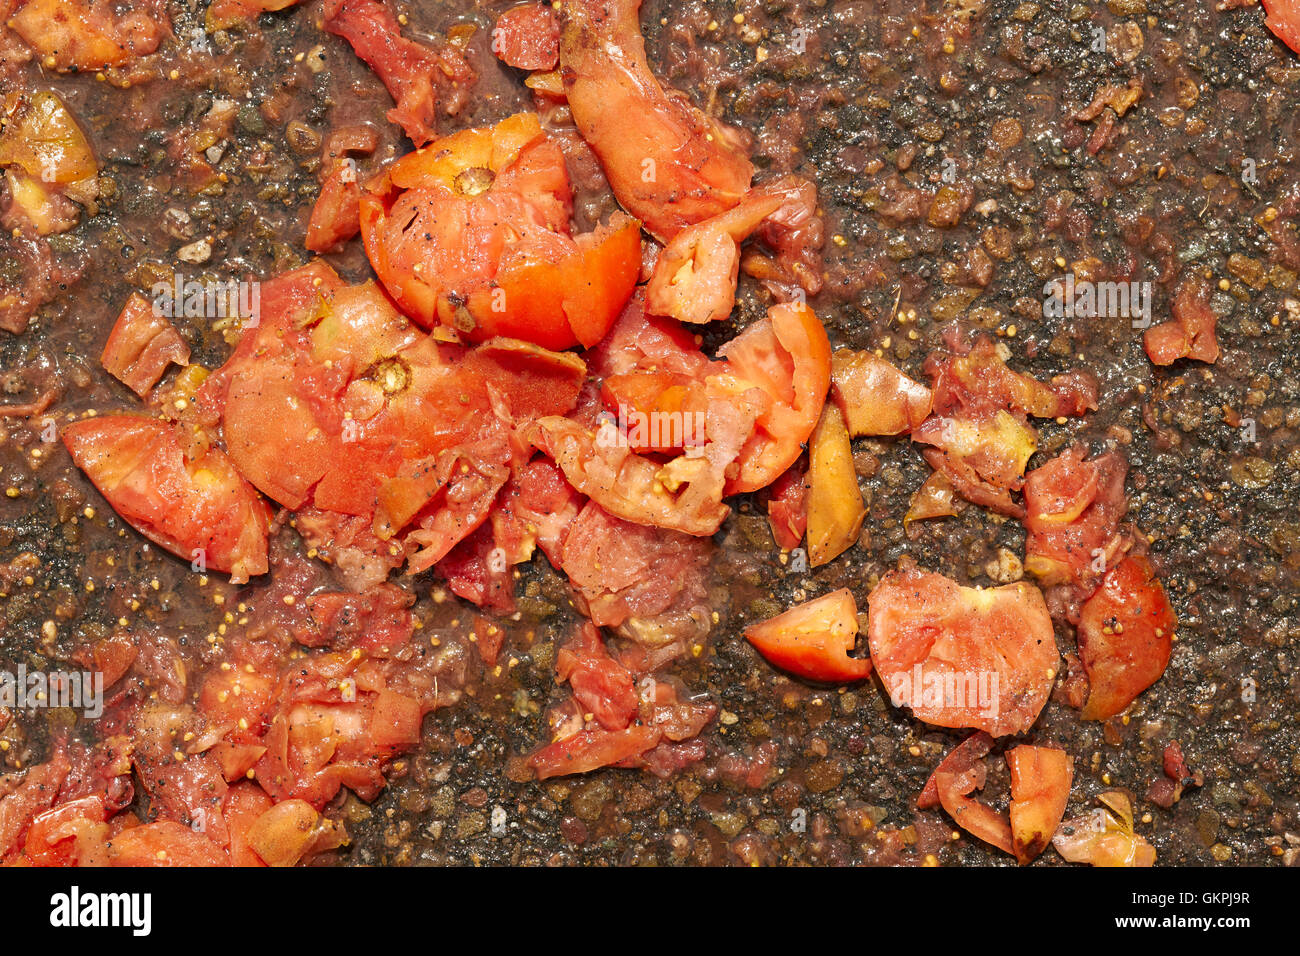 squashed rotten tomatoes leftover from the Tomato Fights, Pittston Tomato Festival, Pittston, Pennsylvania, USA - Stock Image